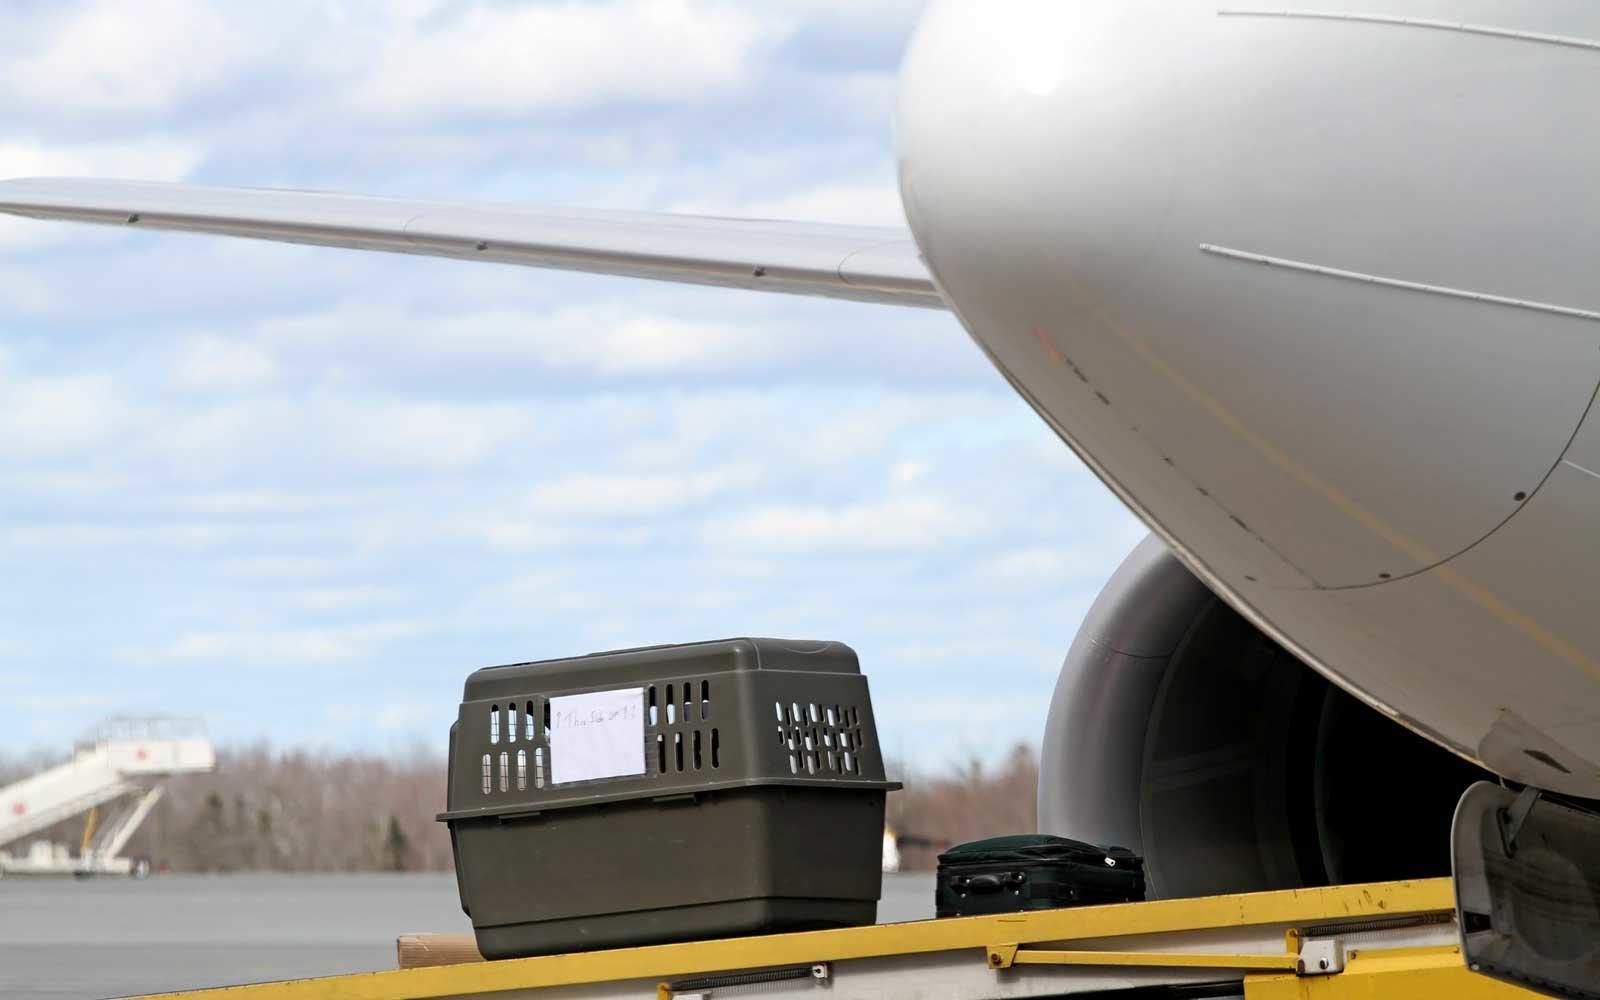 A passengers pet travelling in its carrier is loaded into an airliners cargo compartment.